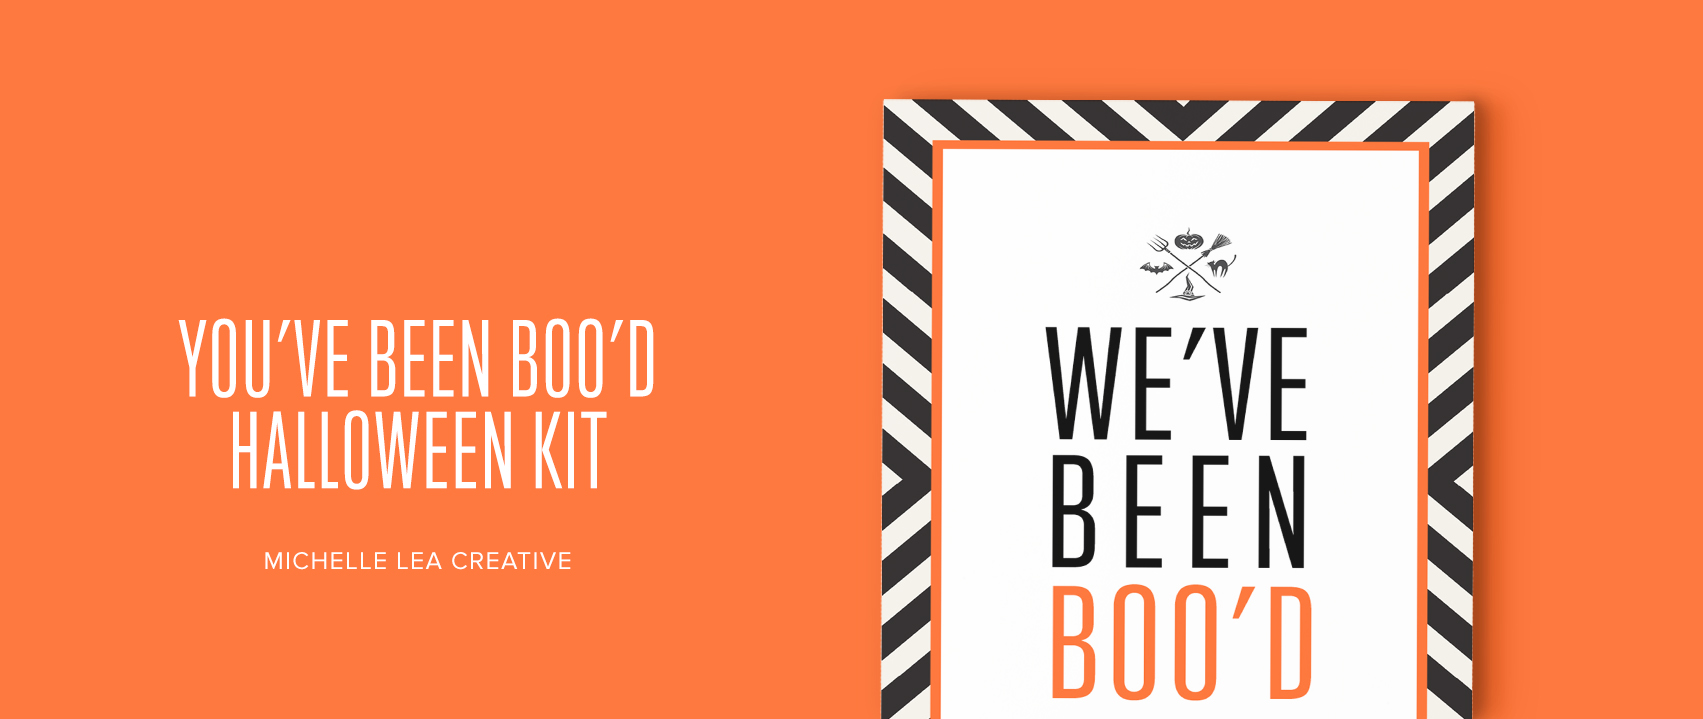 You've Been Boo'd Halloween Kit